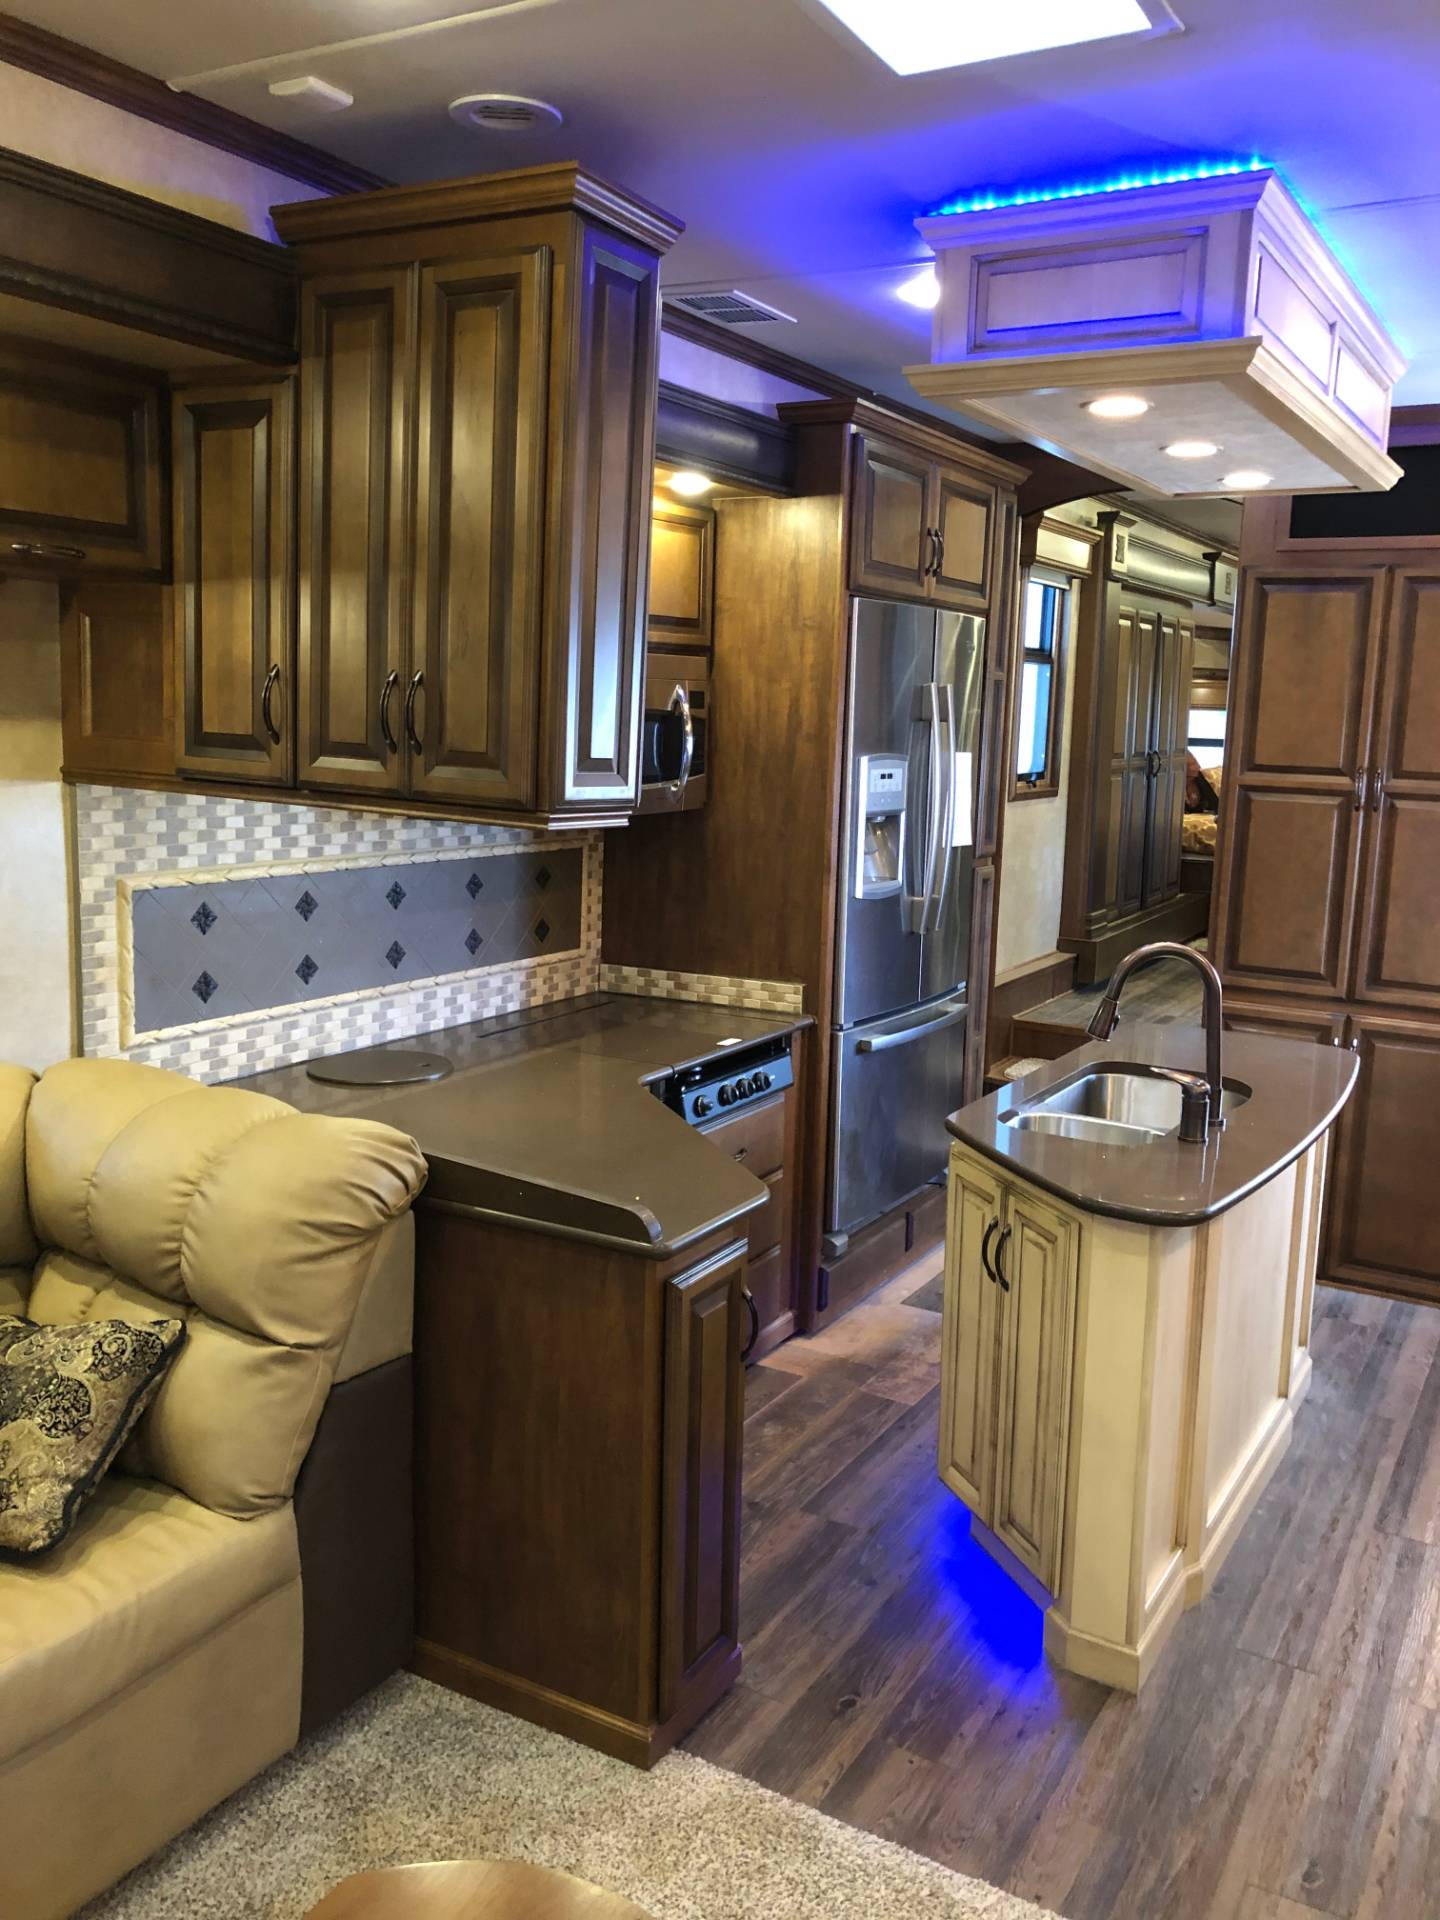 2014 DRV Mobile D Suites 39RESB3 in Wolfforth, Texas - Photo 19